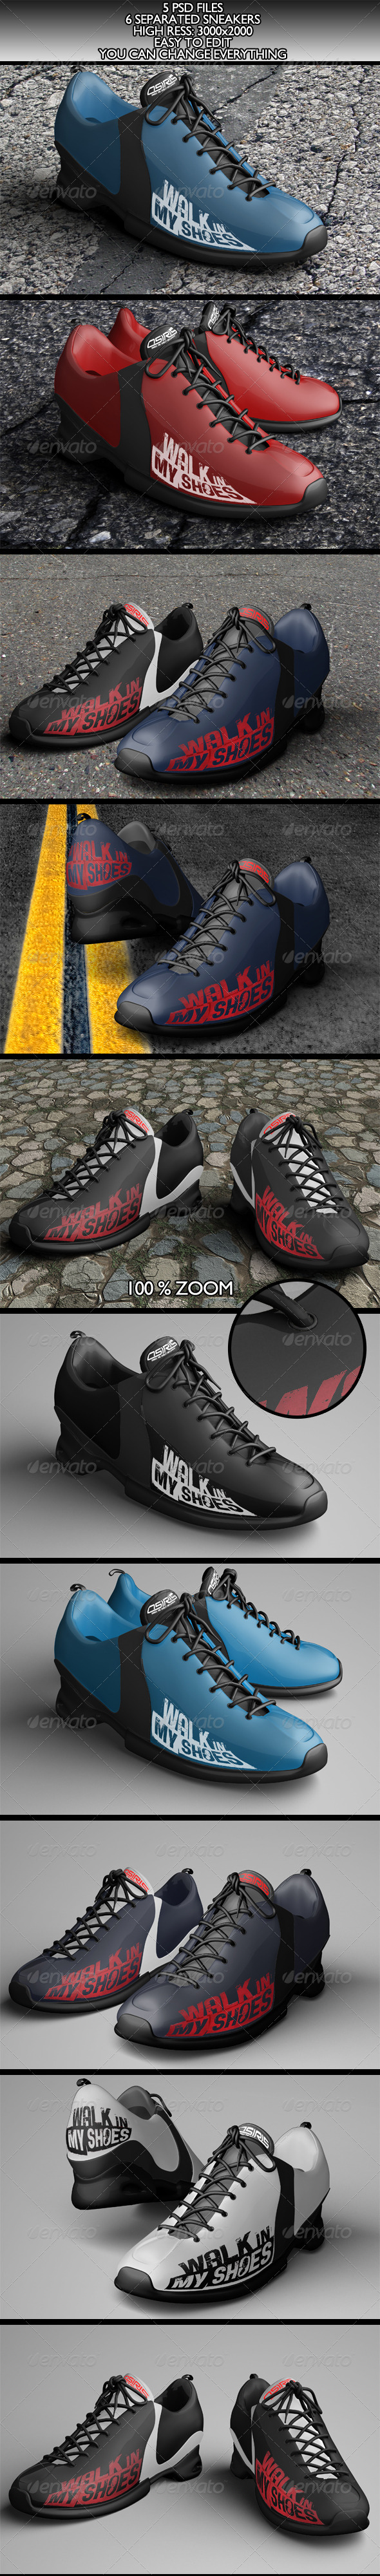 6 Realistic Sneakers Mock-Ups Vol.1 - Product Mock-Ups Graphics